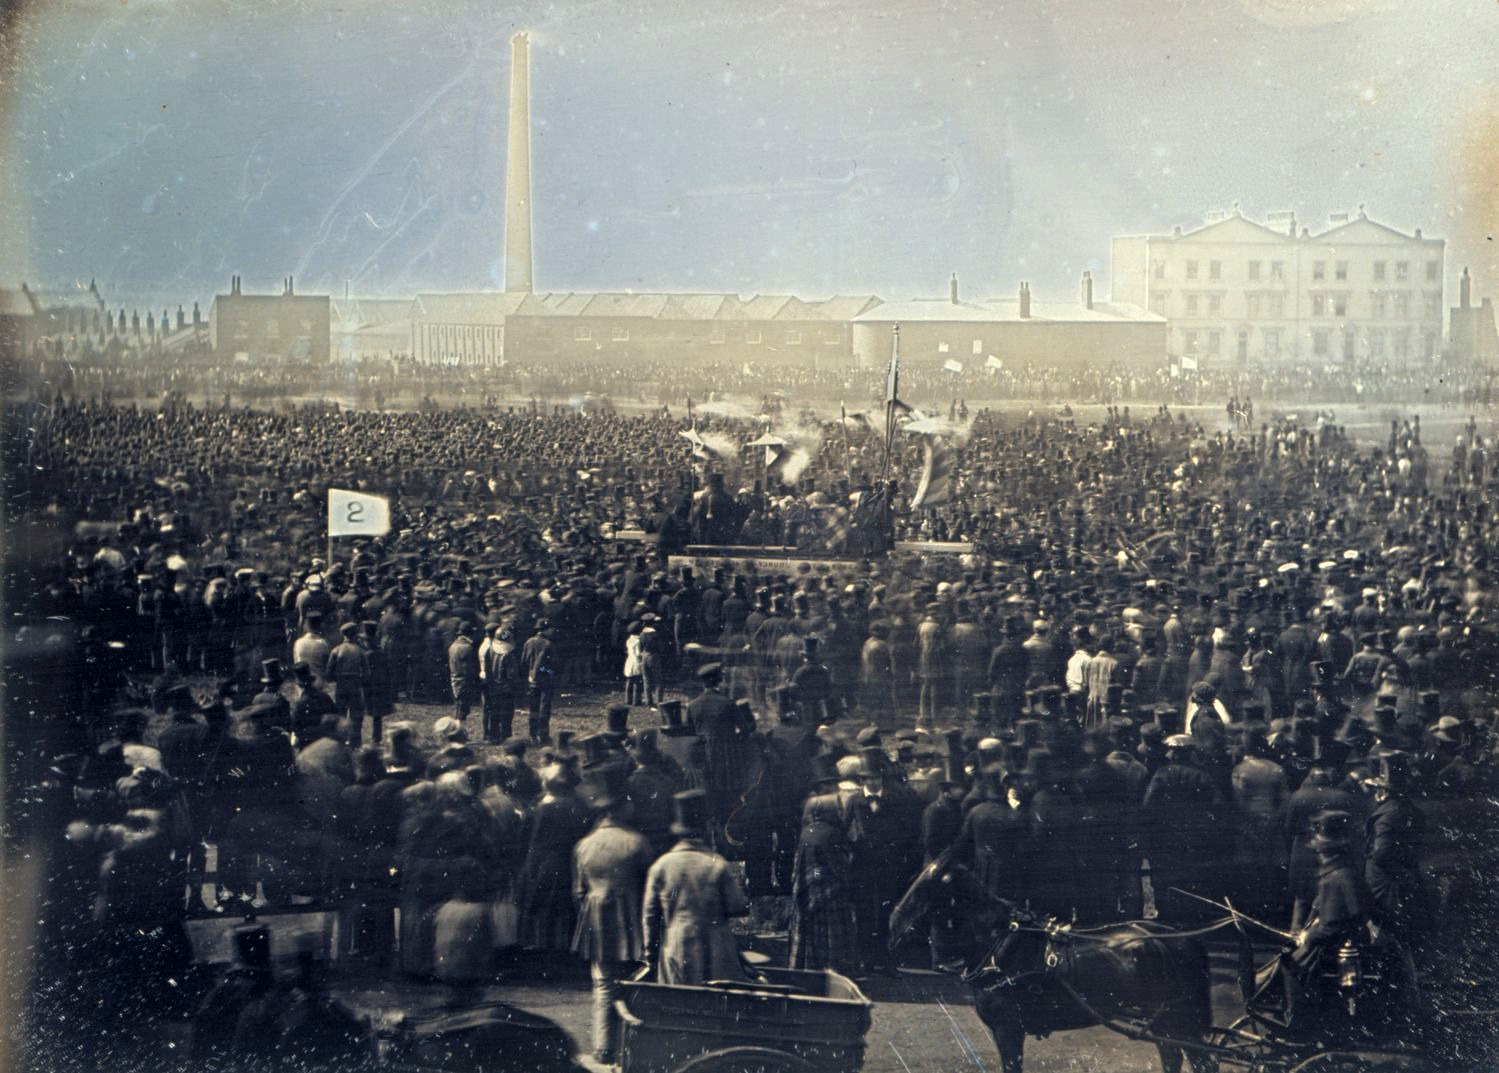 The Great Chartist Meeting on Kennington Common, 1848.